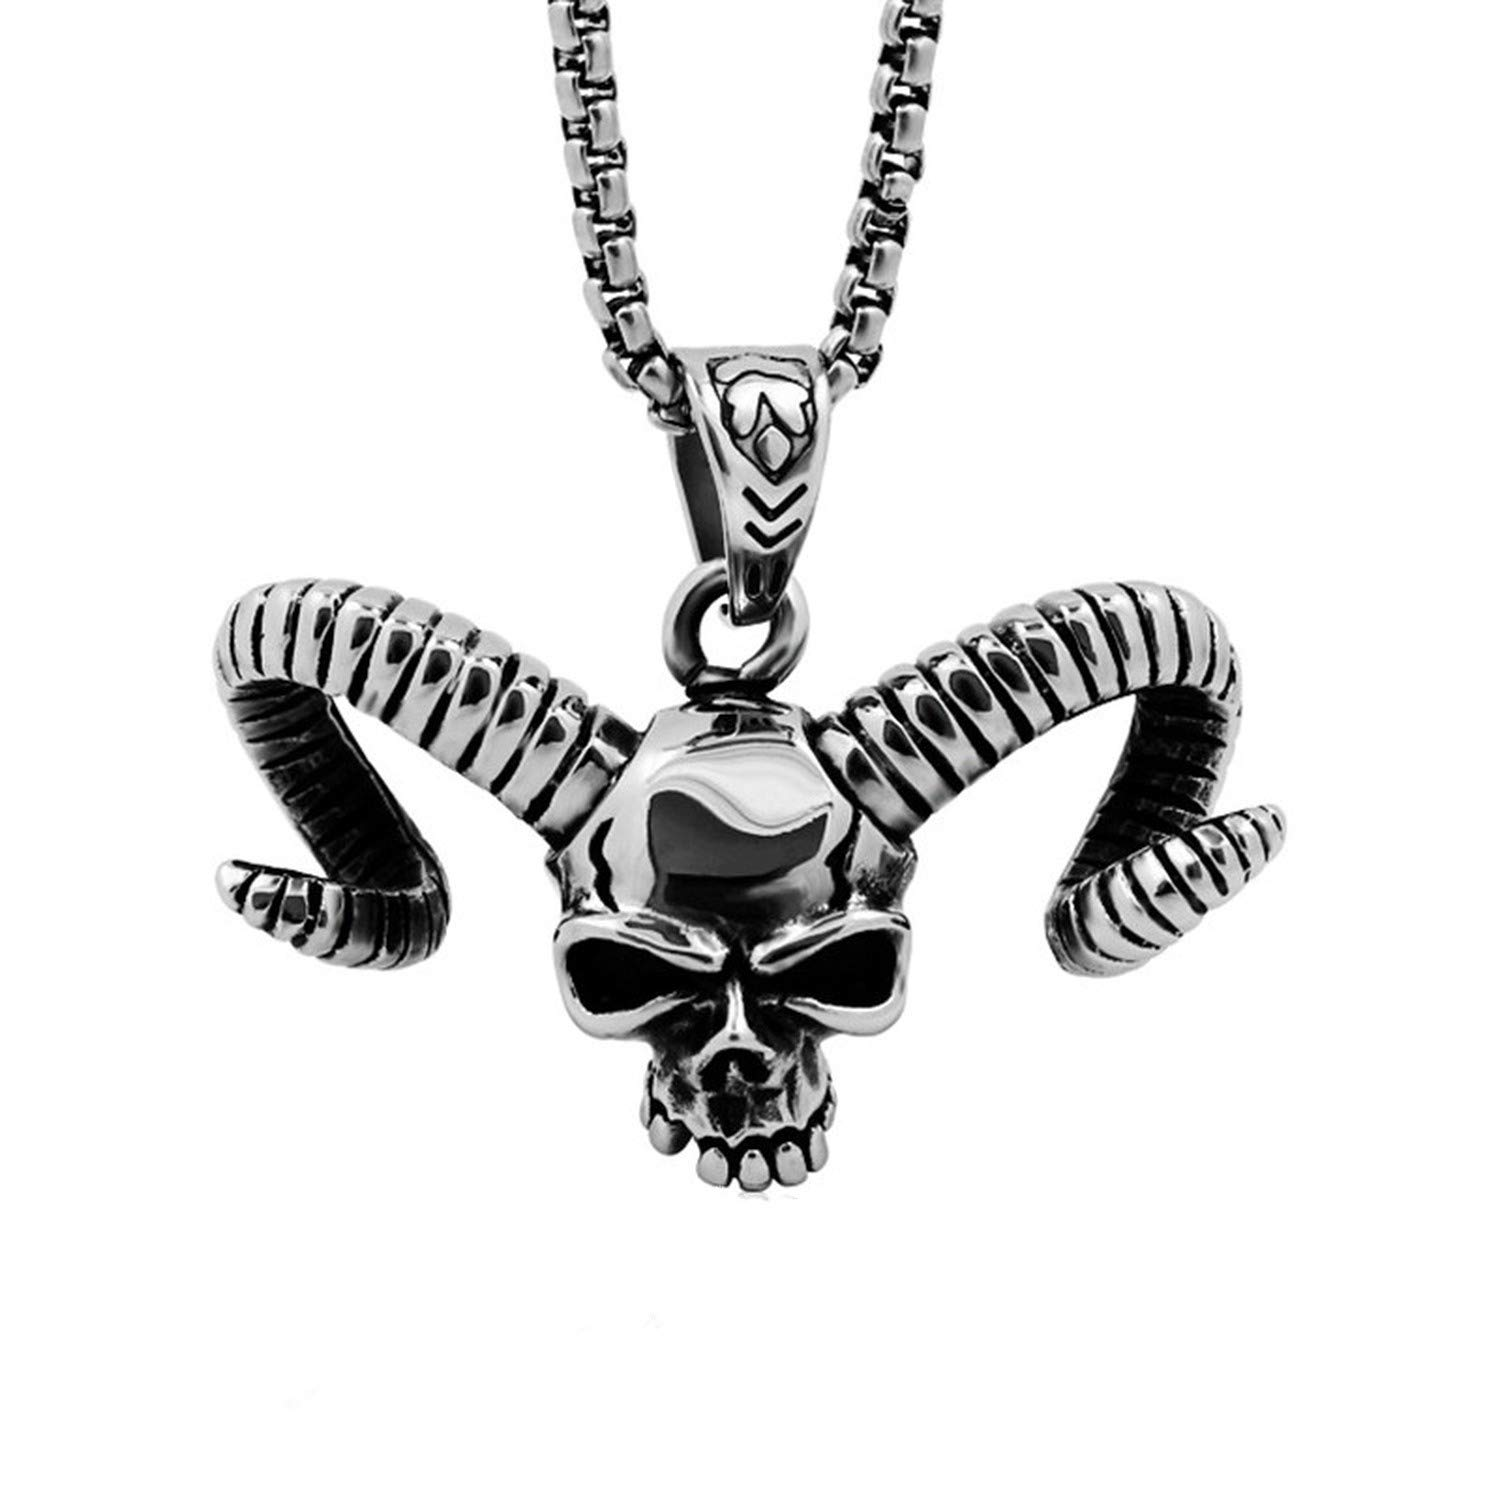 316 Titanium Stainless Steel Men Necklace Retro Skull Cow Horn Pendant Necklace Rock Cool Boys Nightclub Party Jewelry